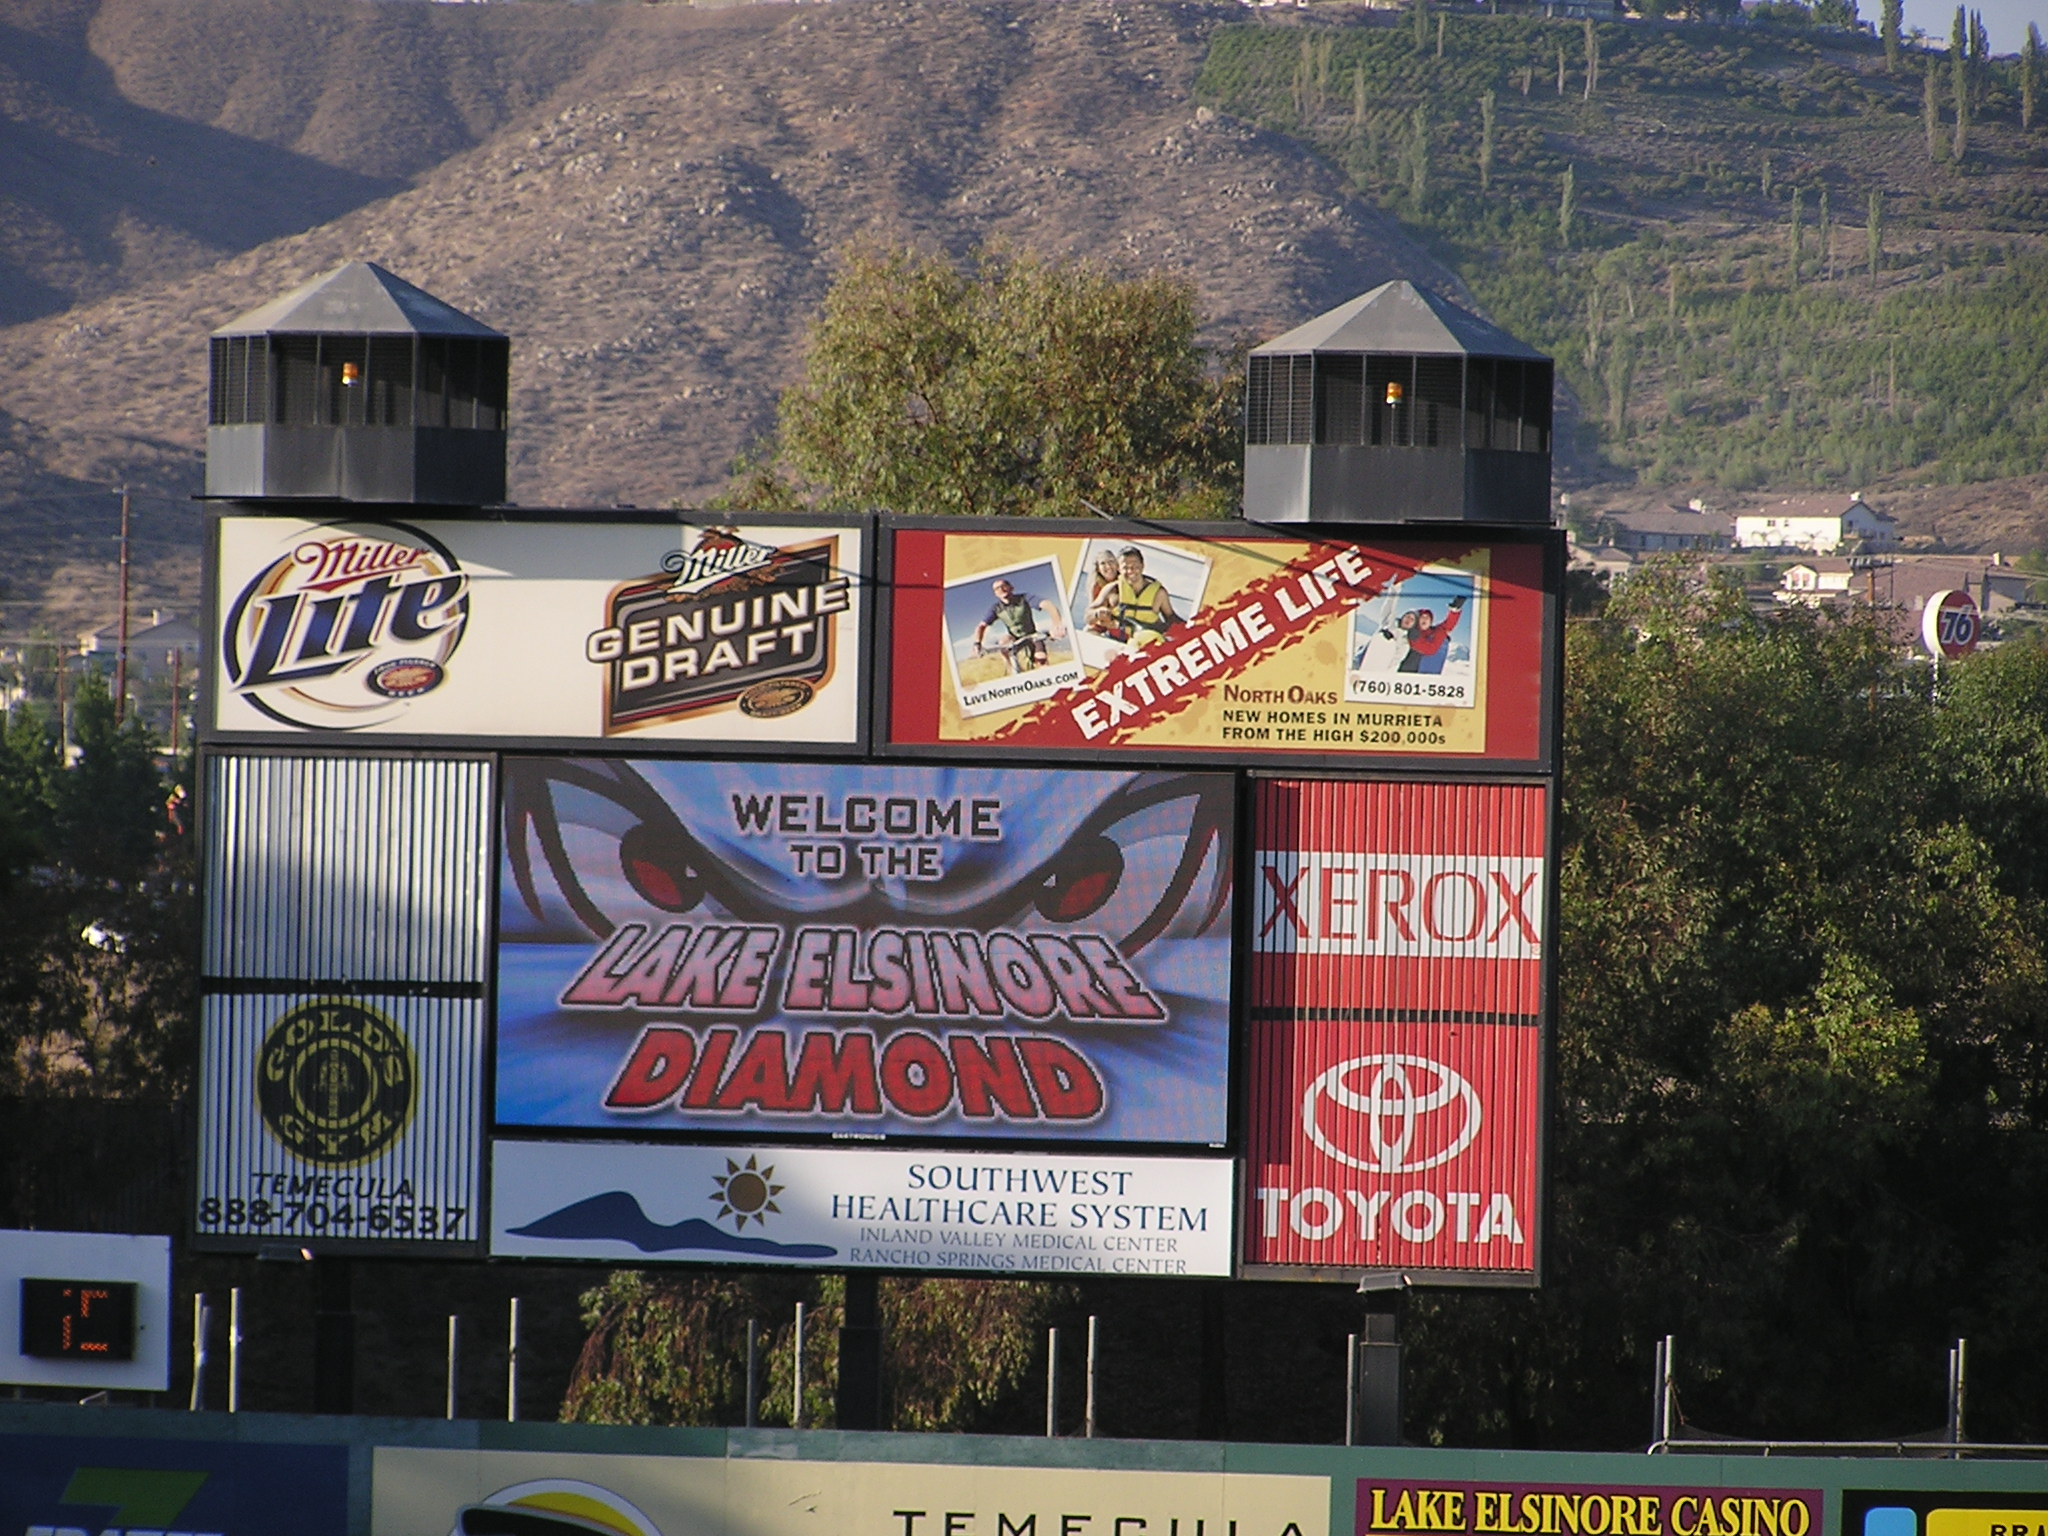 The video board in LF - Lake Elsinore, Ca